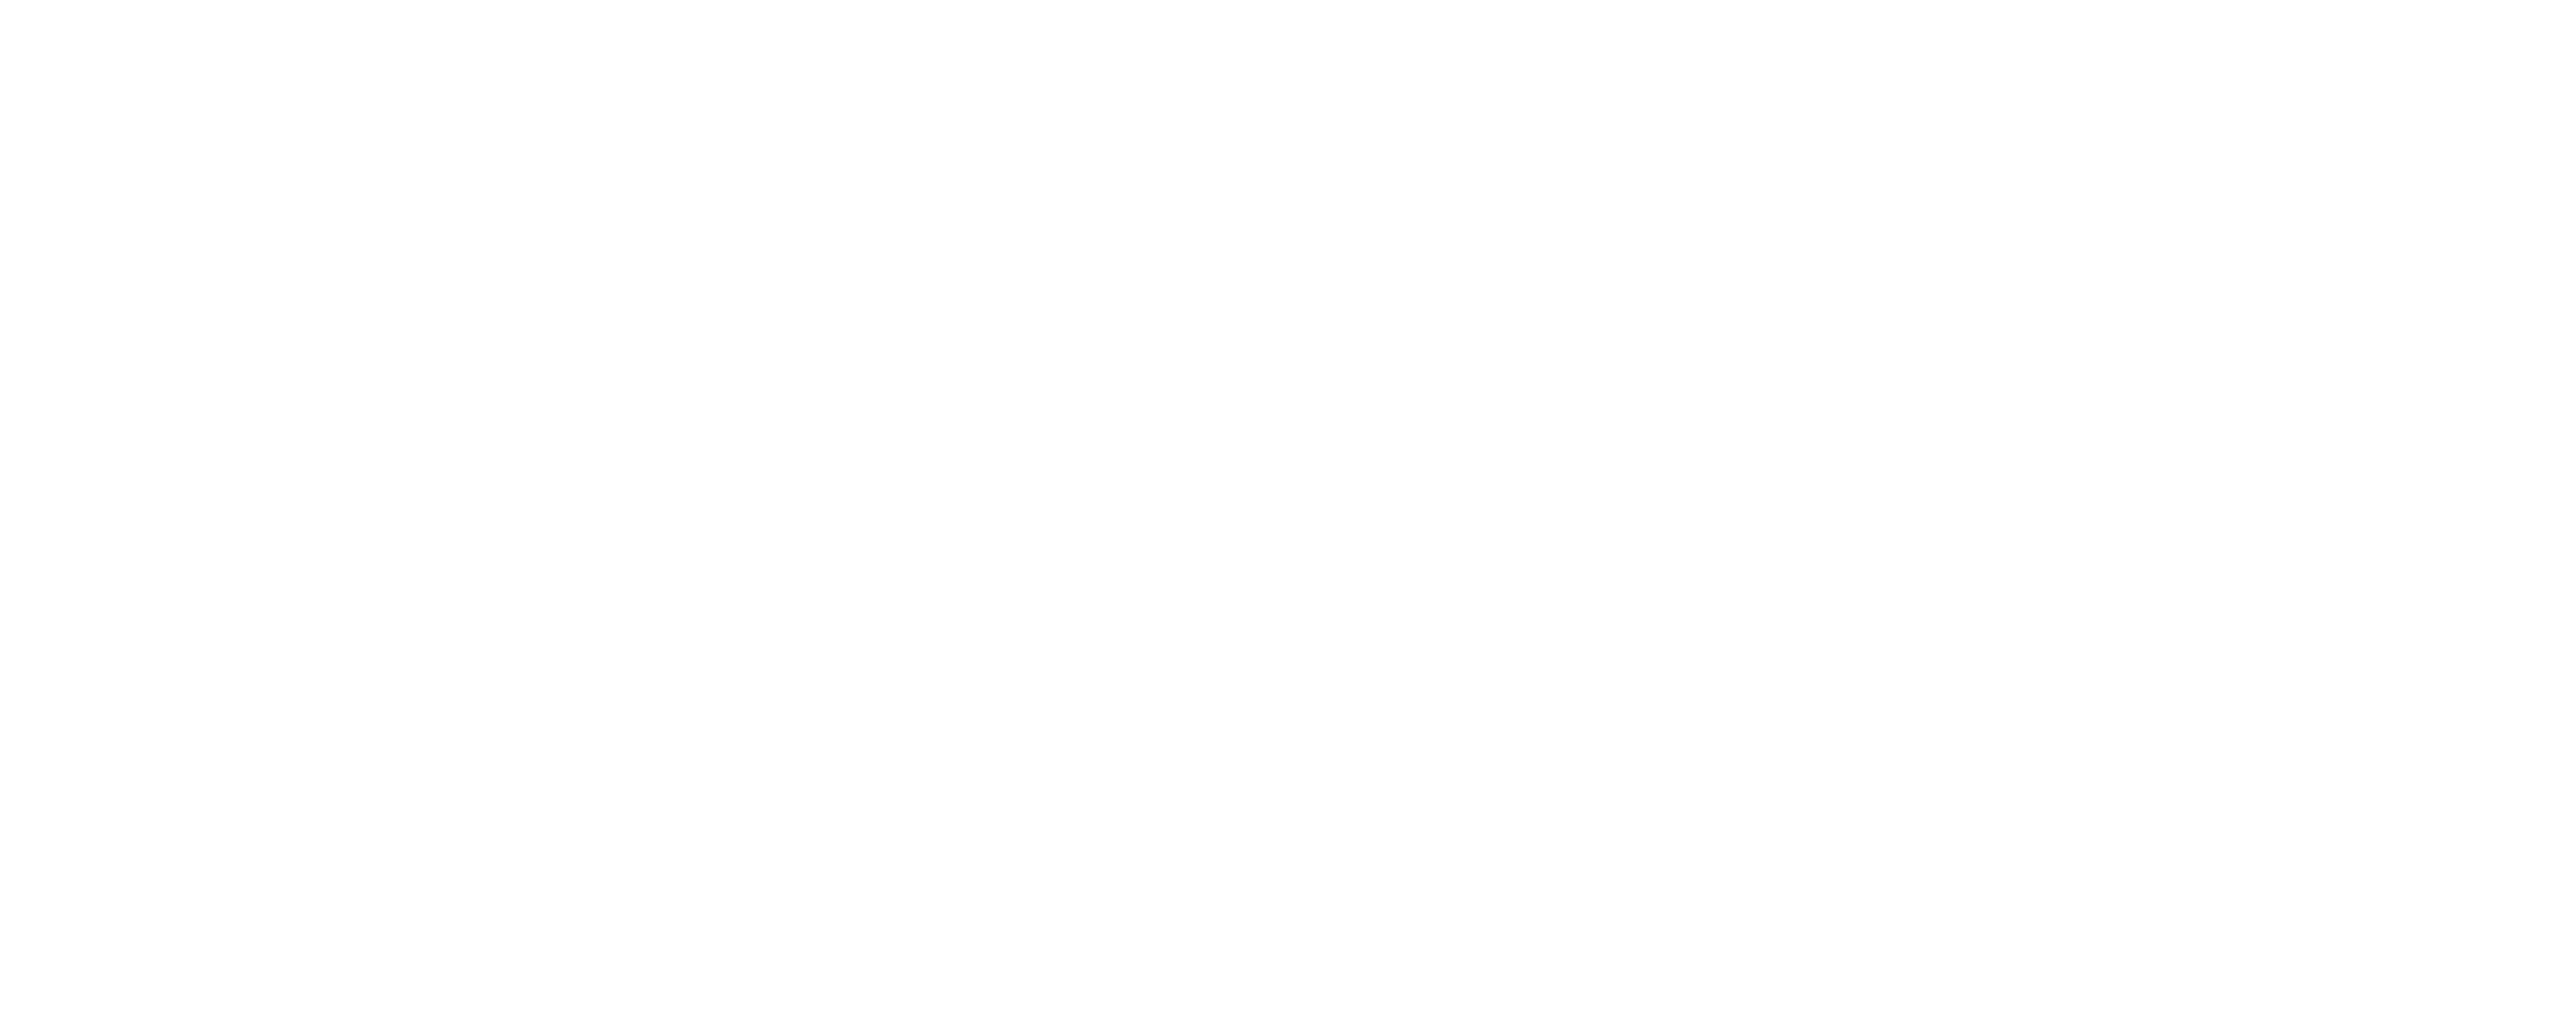 Cannondale Mountain Bikes | Crafted for good times in the dirt